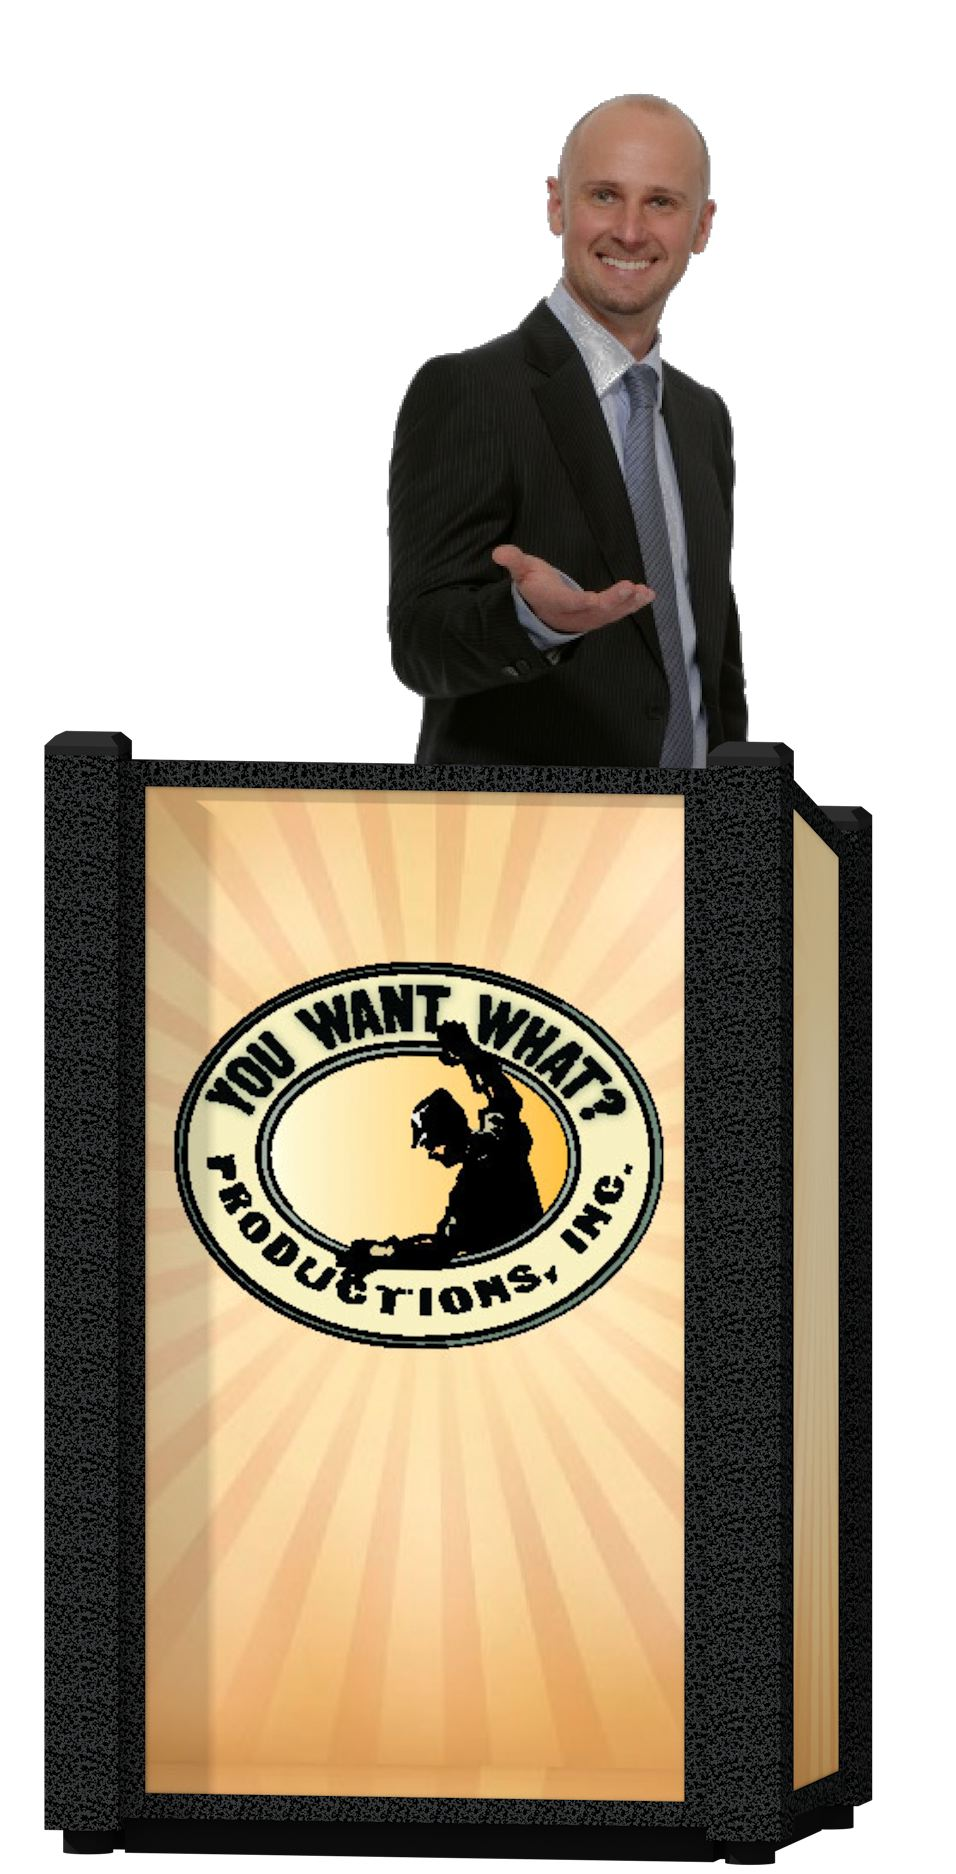 The Chameleon rental podium by You Want What? Productions INC